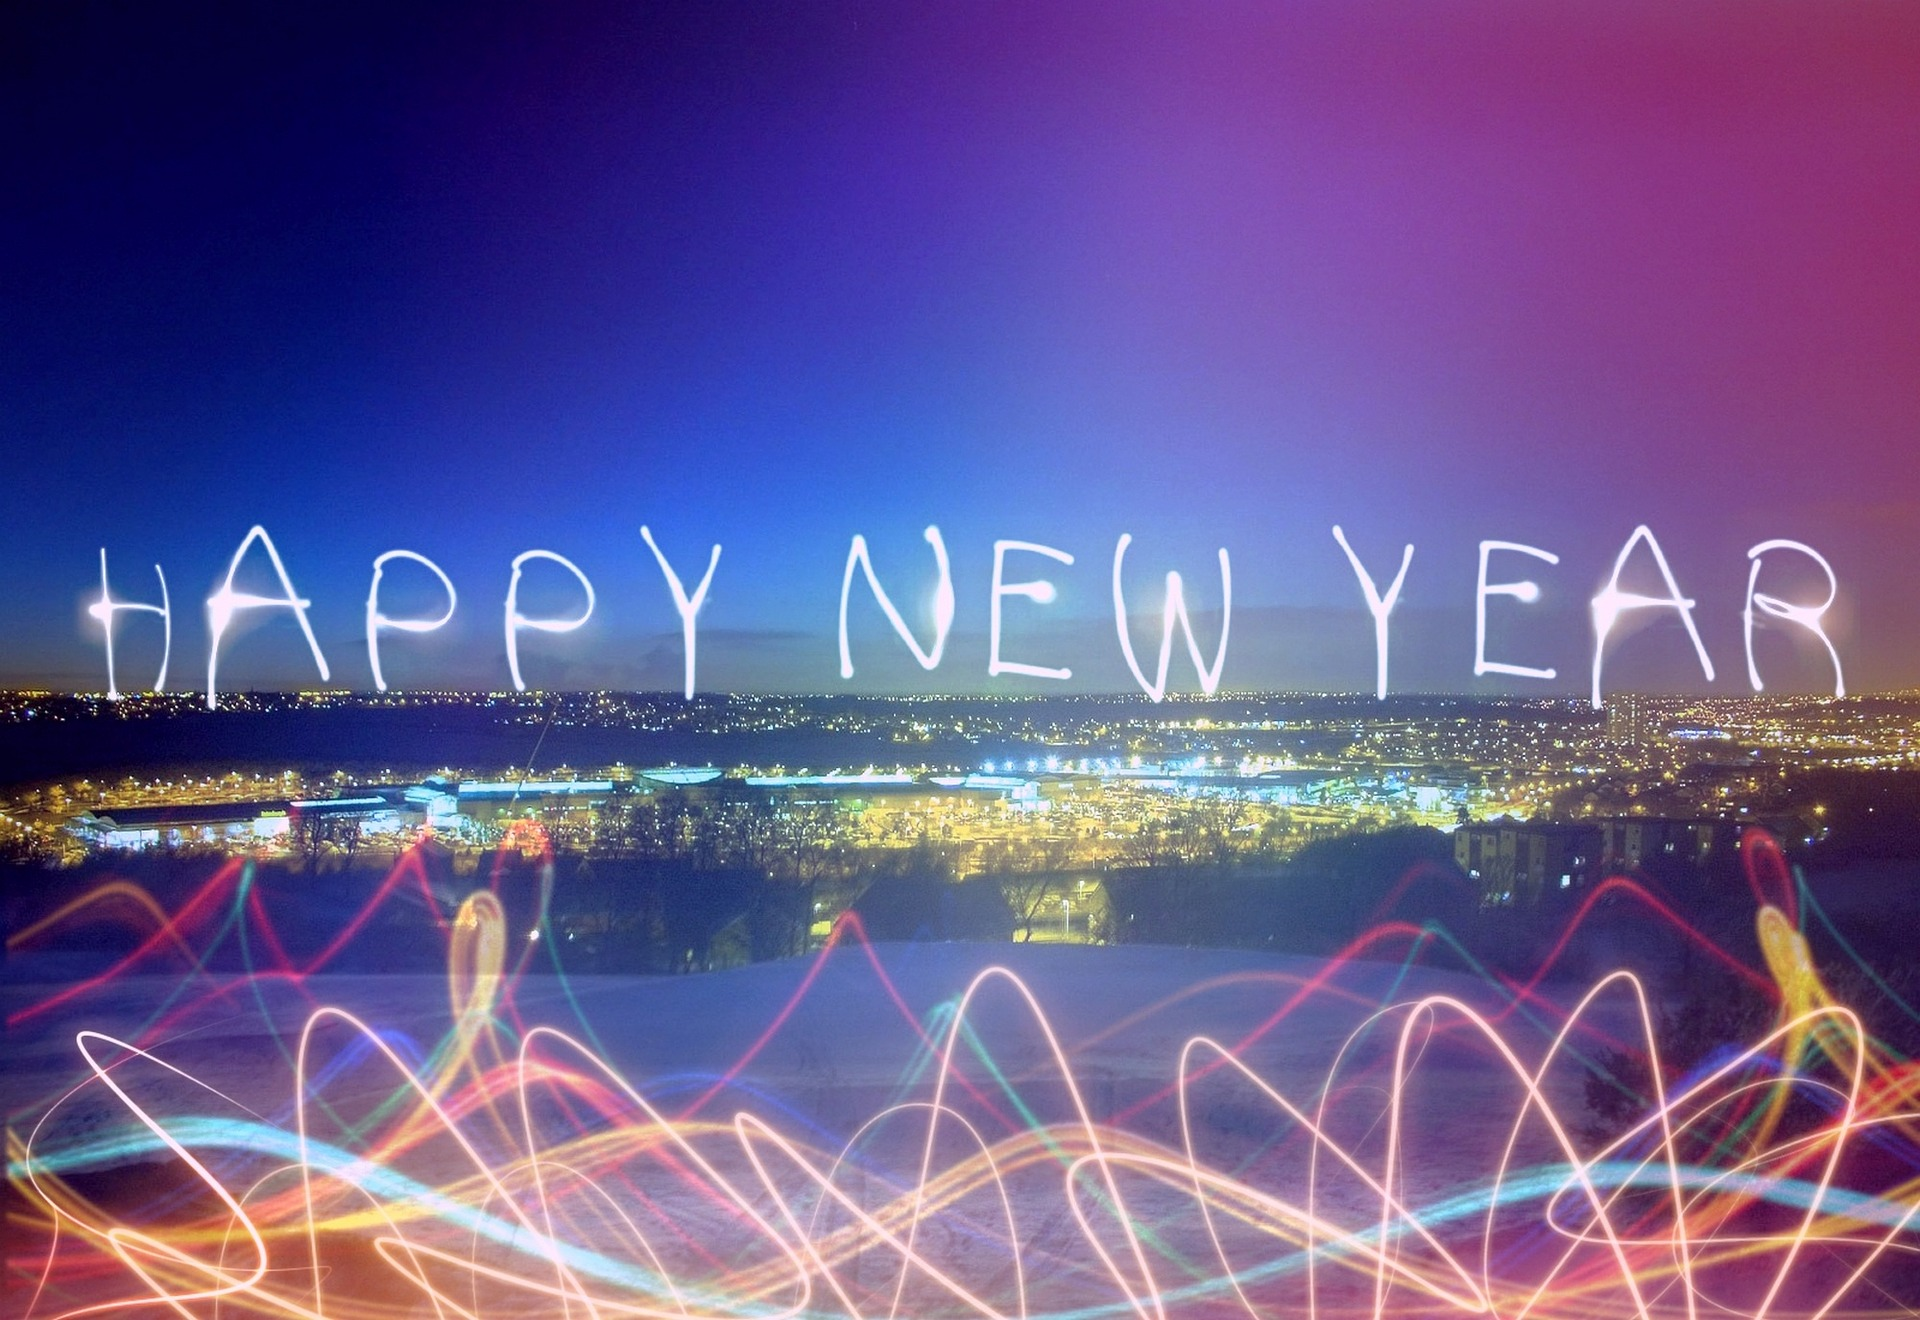 All Estate Sales San Diego wishes everyone a great 2019!